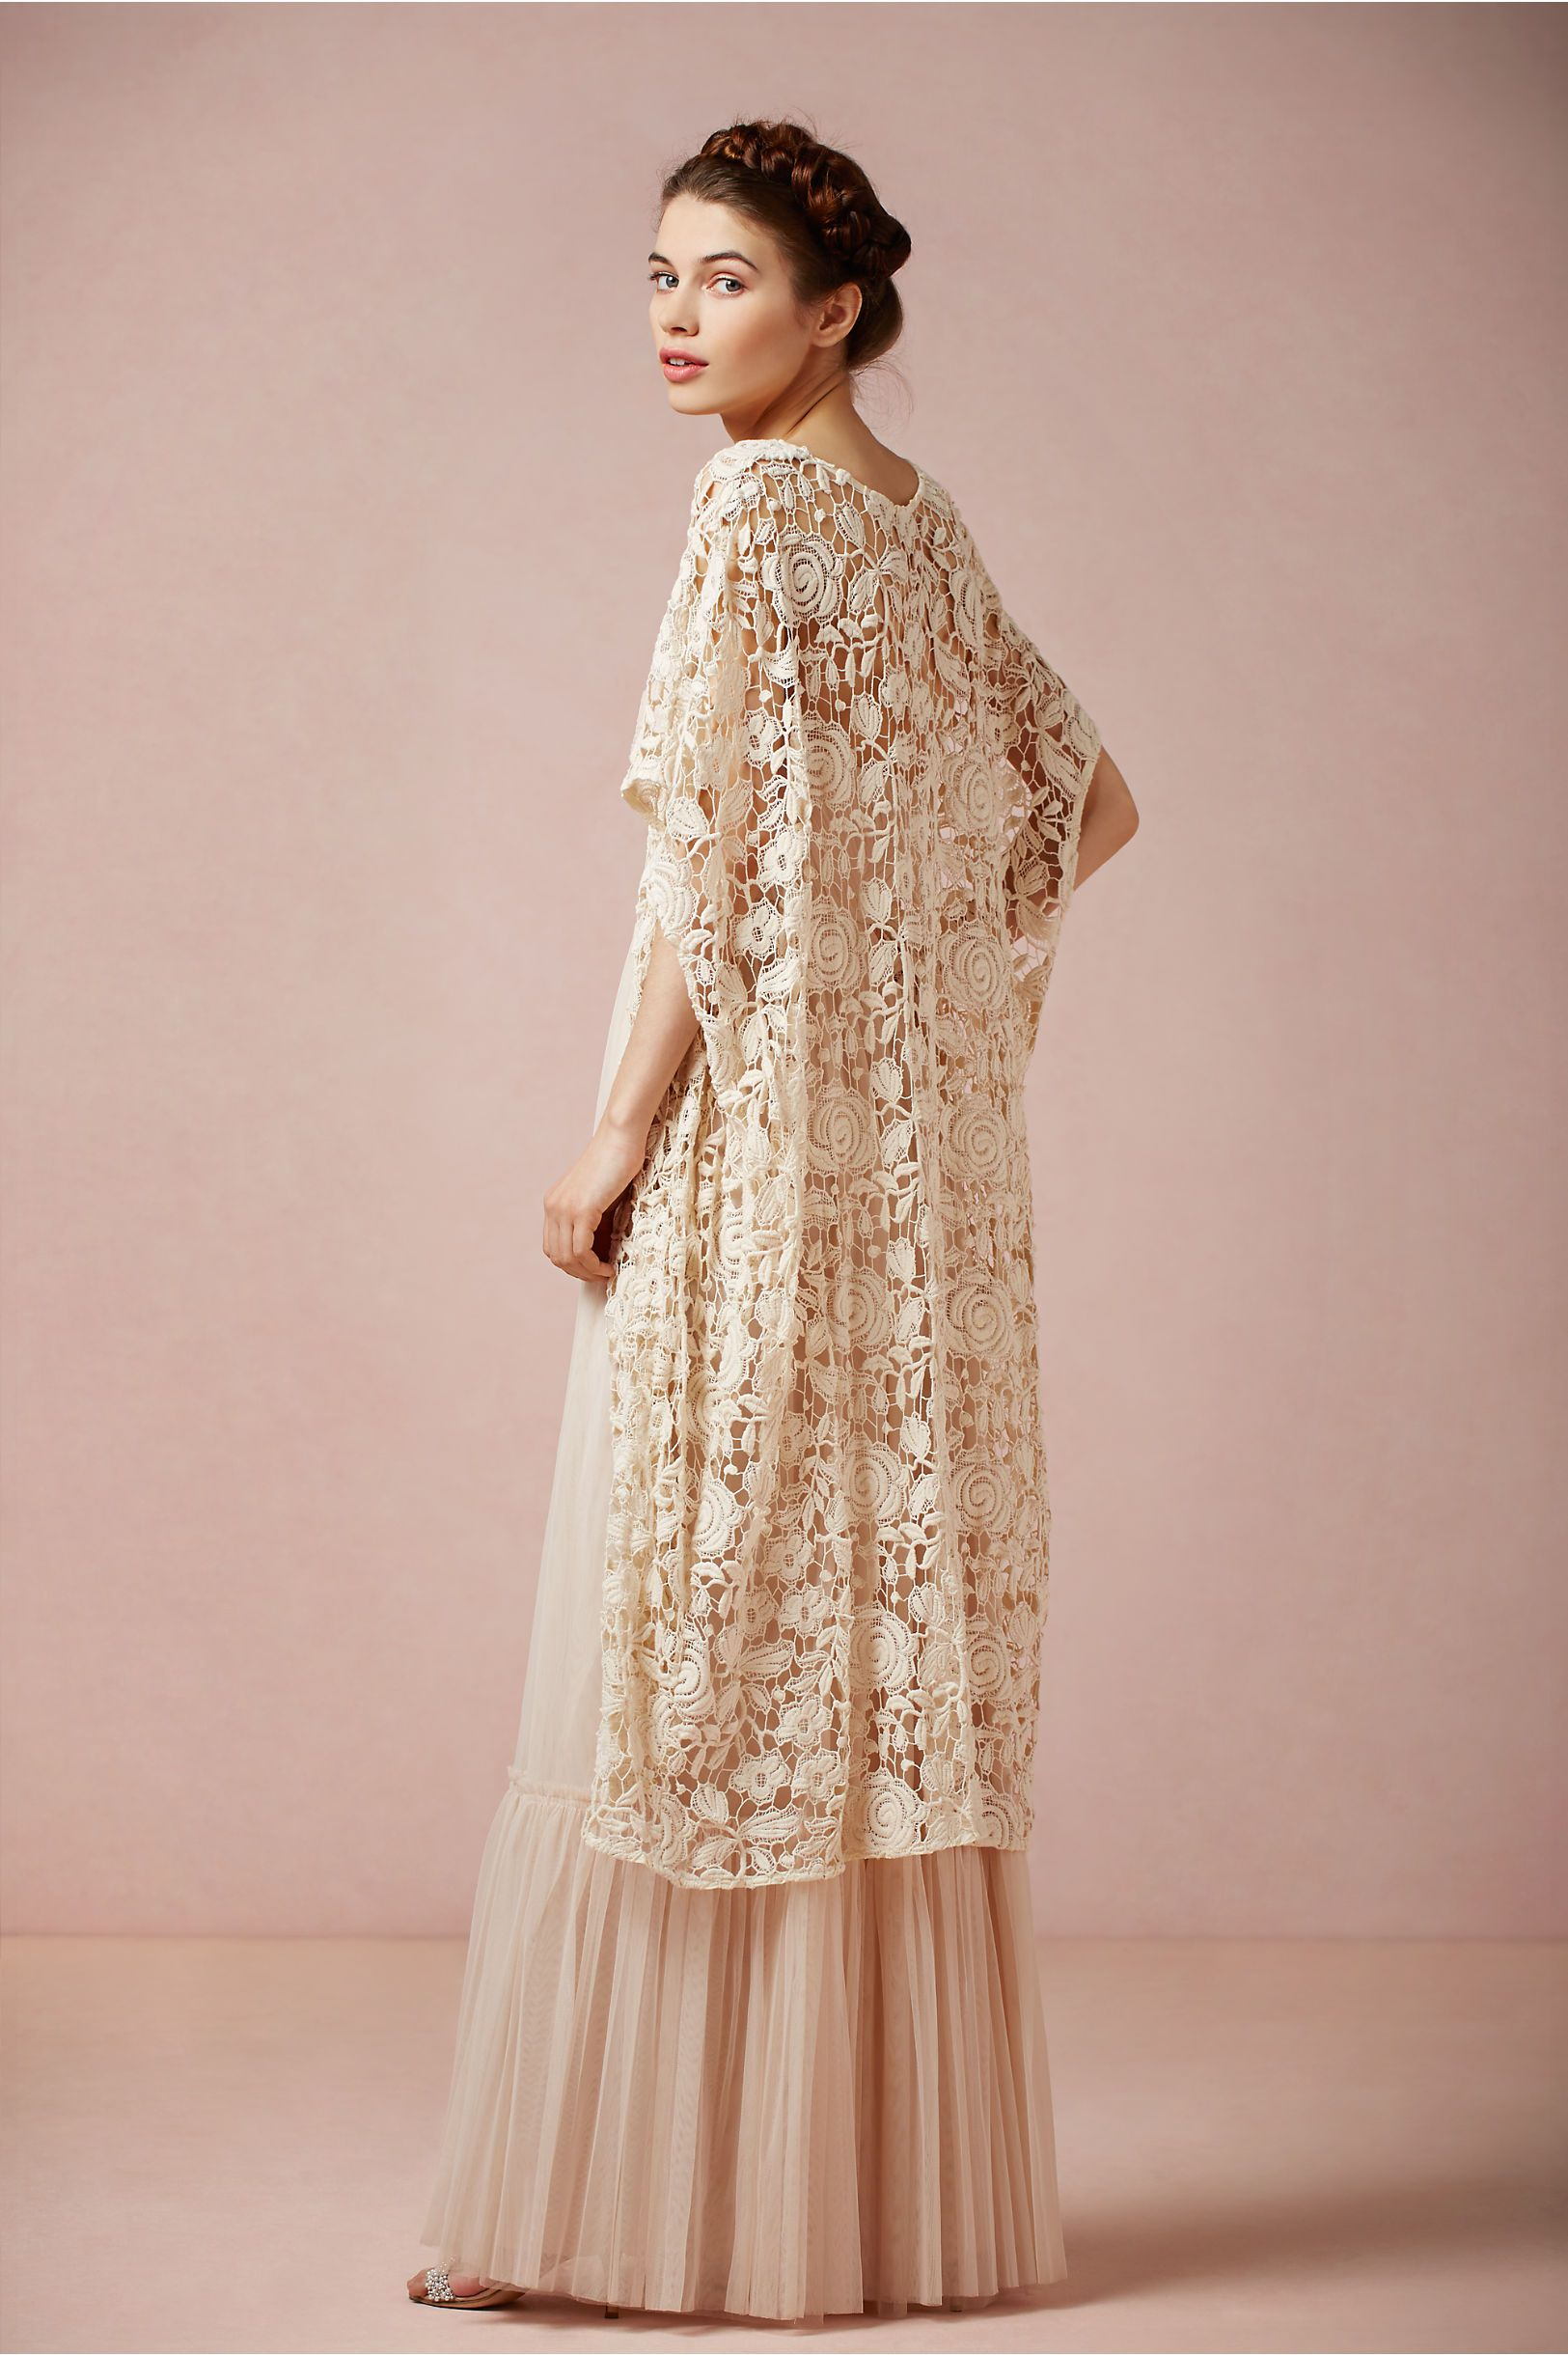 French Lace Cotton Cover-up, BHLDN Rose Garden Cape | ~ Weddings ...